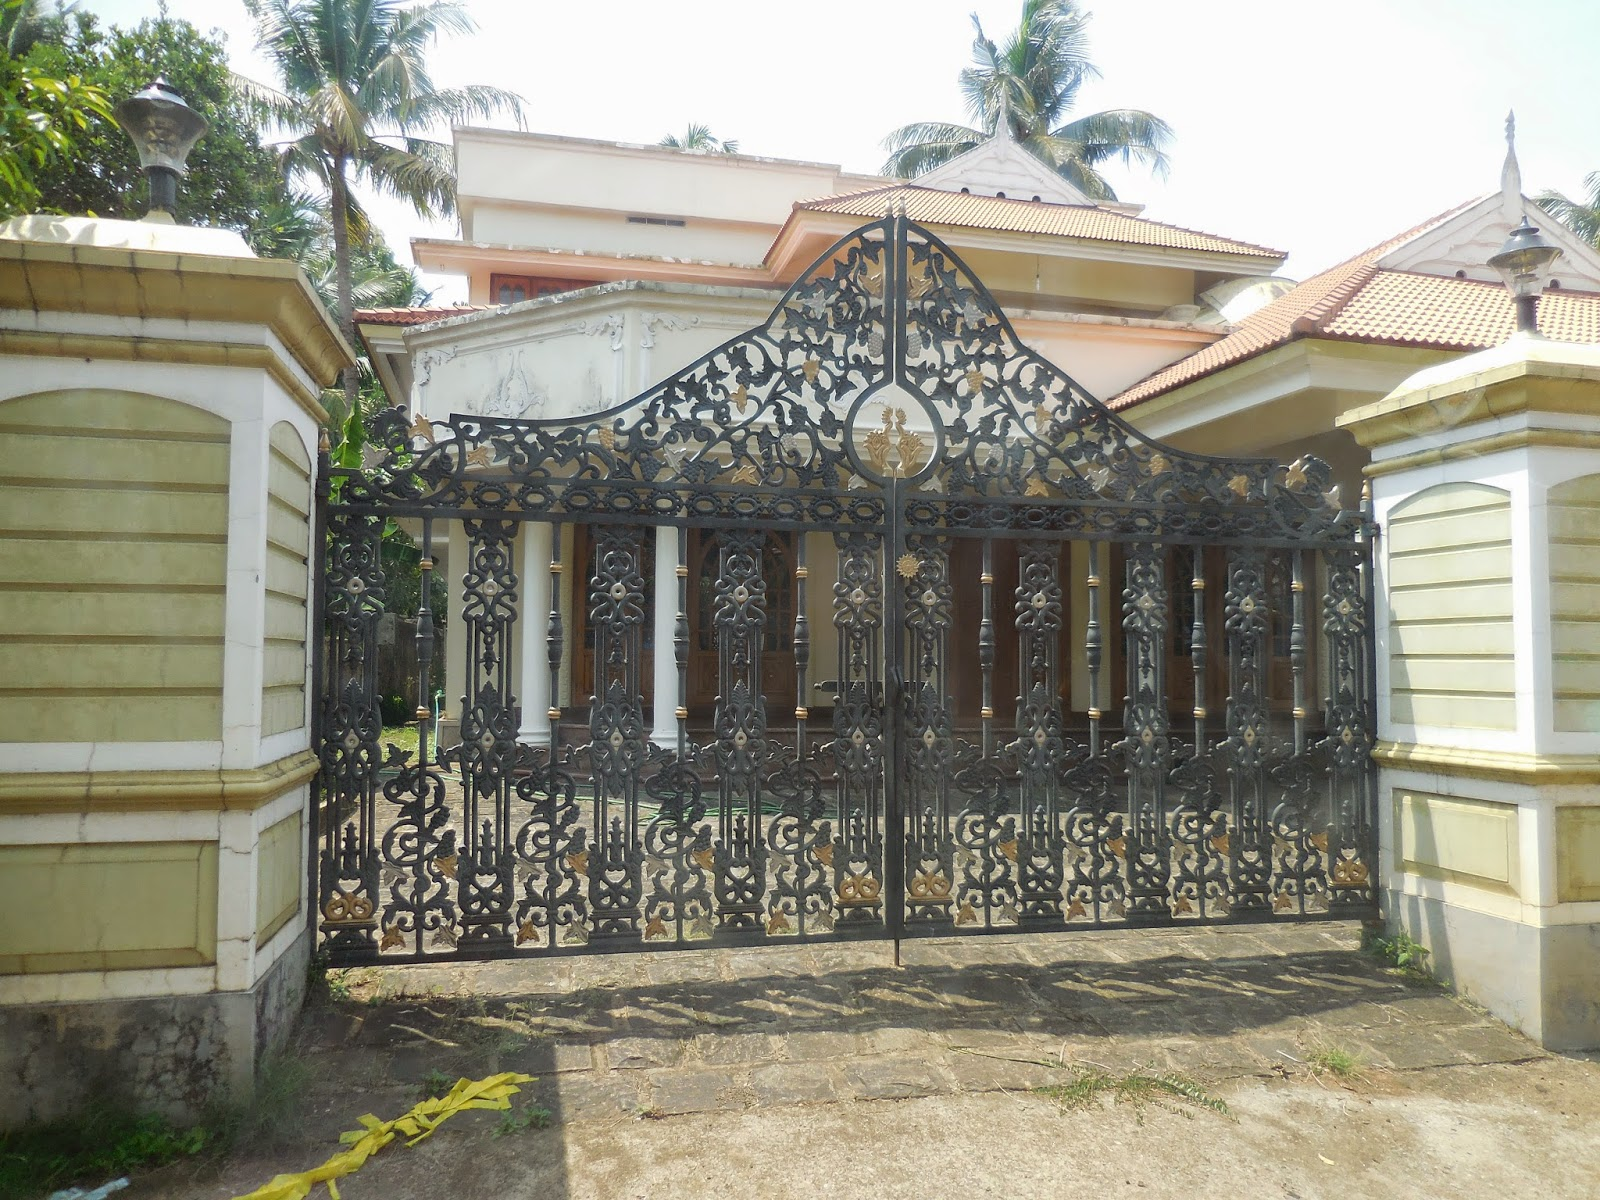 Kerala Gate Designs: Houses gates in Thrissur District, Kerala on modern house design, house pool design, house wall design, drive gates design, house floor plans, house architecture design, house balcony design, house green design, safe house design, house flower garden design, house fence design, house floor design, driveway gates design, house carport design, house exterior and interior design, find and design, modern stair wall design, house living room design, iron works design, house design styles,